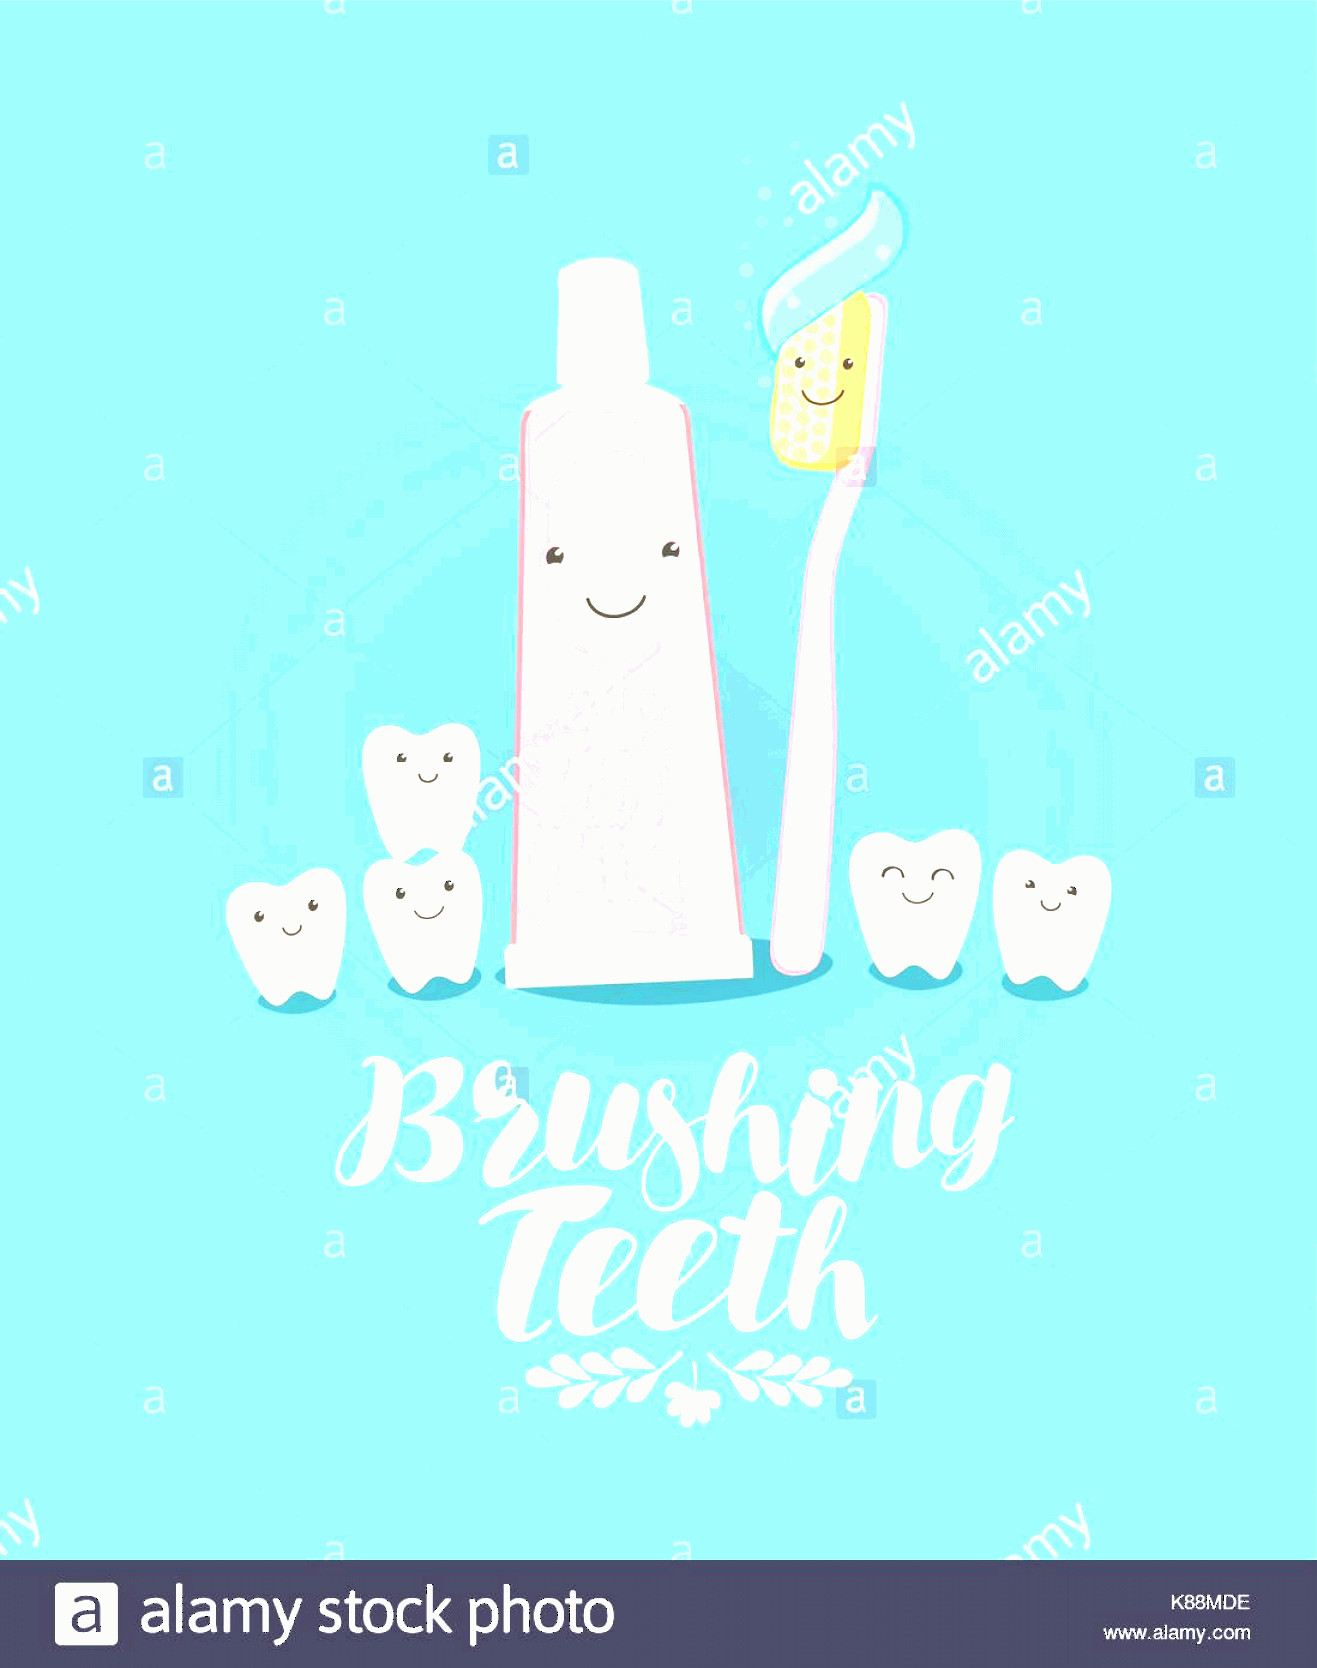 Toothpaste Cartoon Vector: Stock Image Brushing Teeth Banner Tooth Toothpaste Toothbrush Dentistry Dental